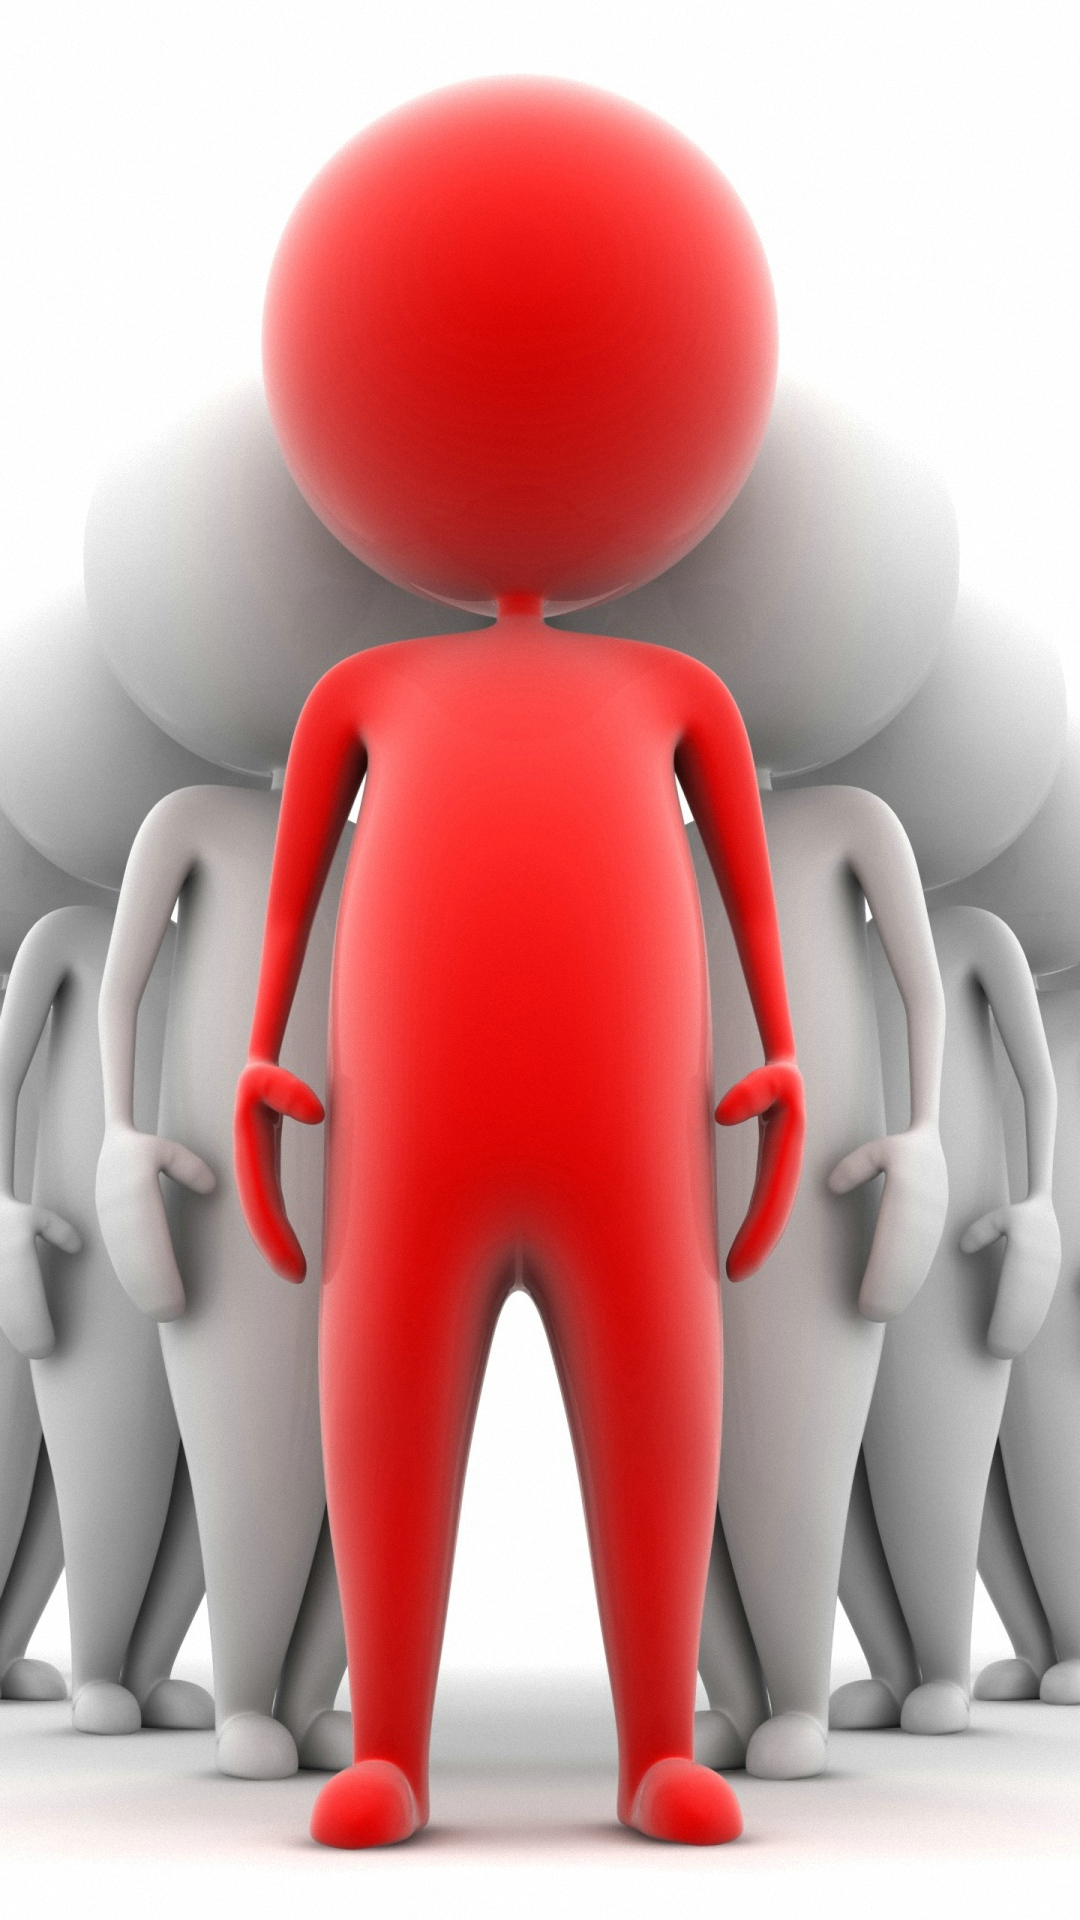 people crowd clipart little men iPhone 6 wallpapers HD and 1080P 6.